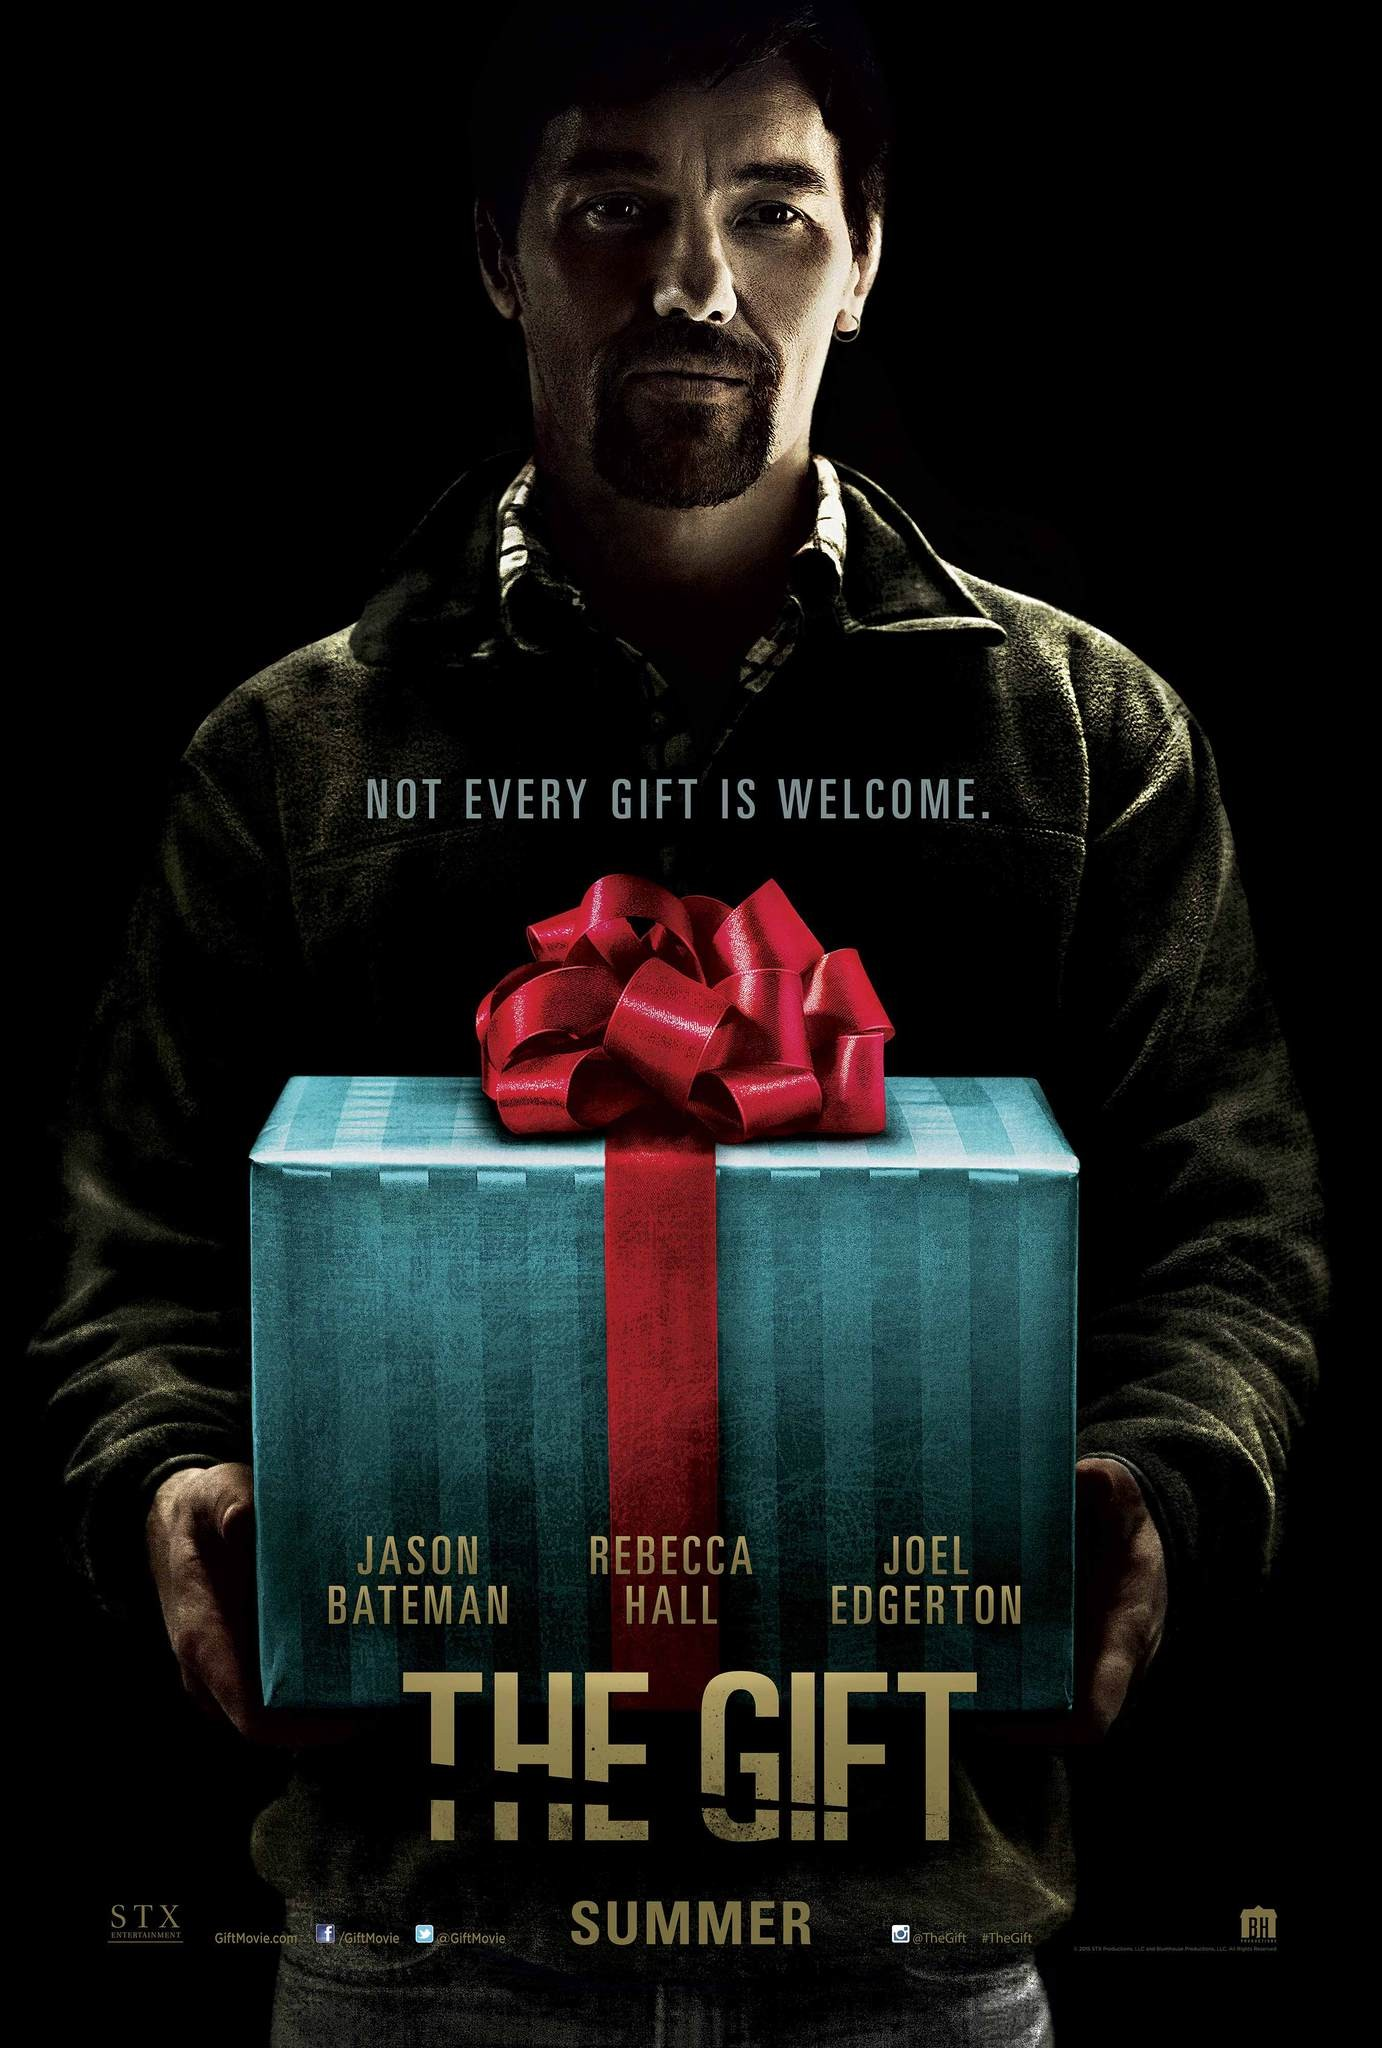 a movie review of the gift A gift horse 1,267 likes 1 talking about this a gift horse, starring john schneider and kyla kenedy, is a family friendly, inspirational horse film.